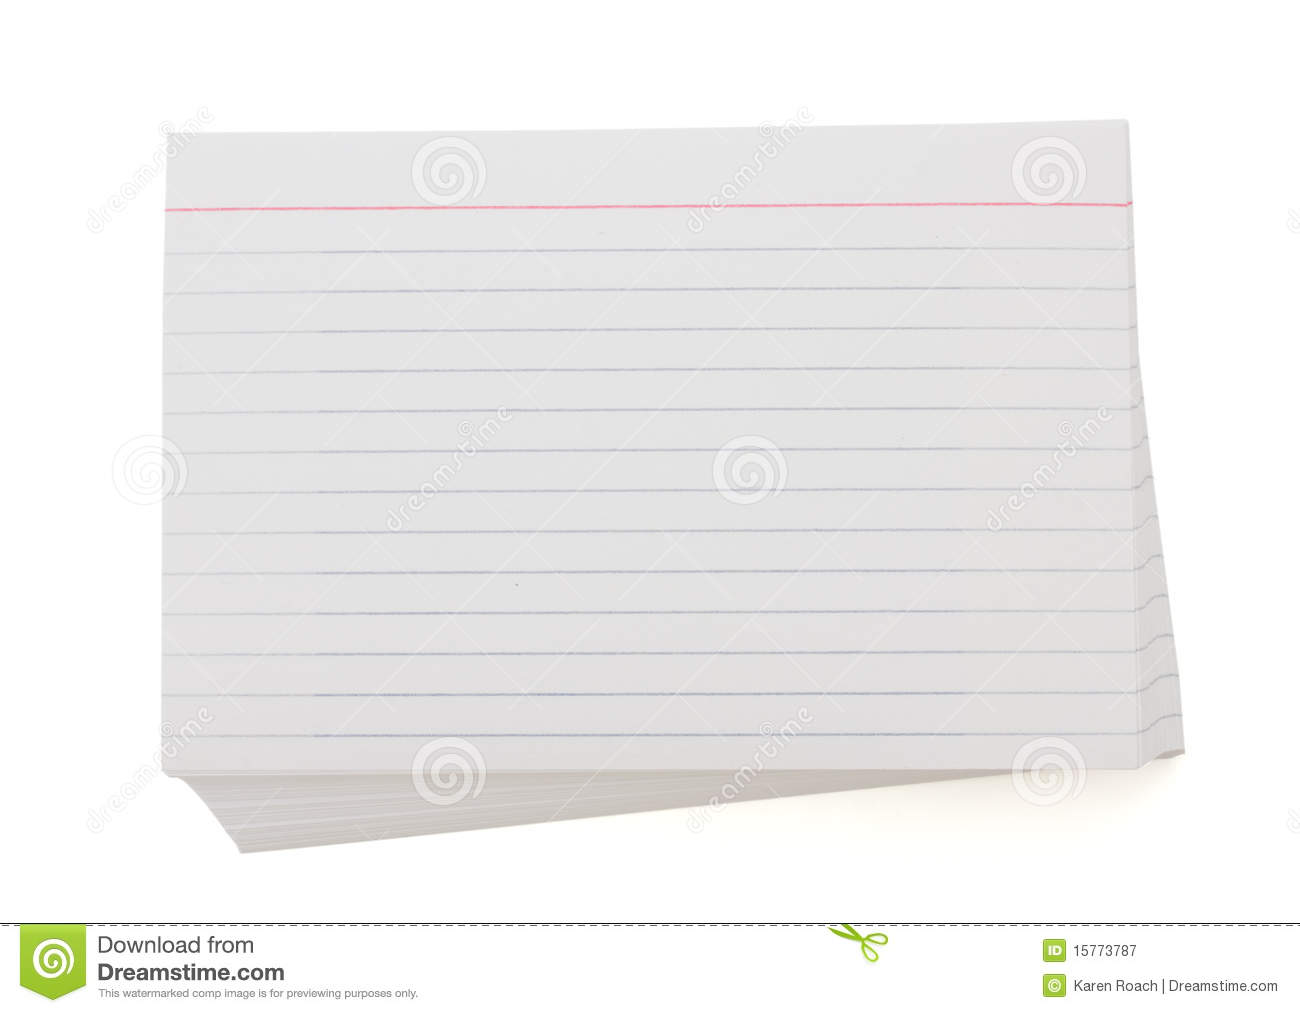 print on index cards